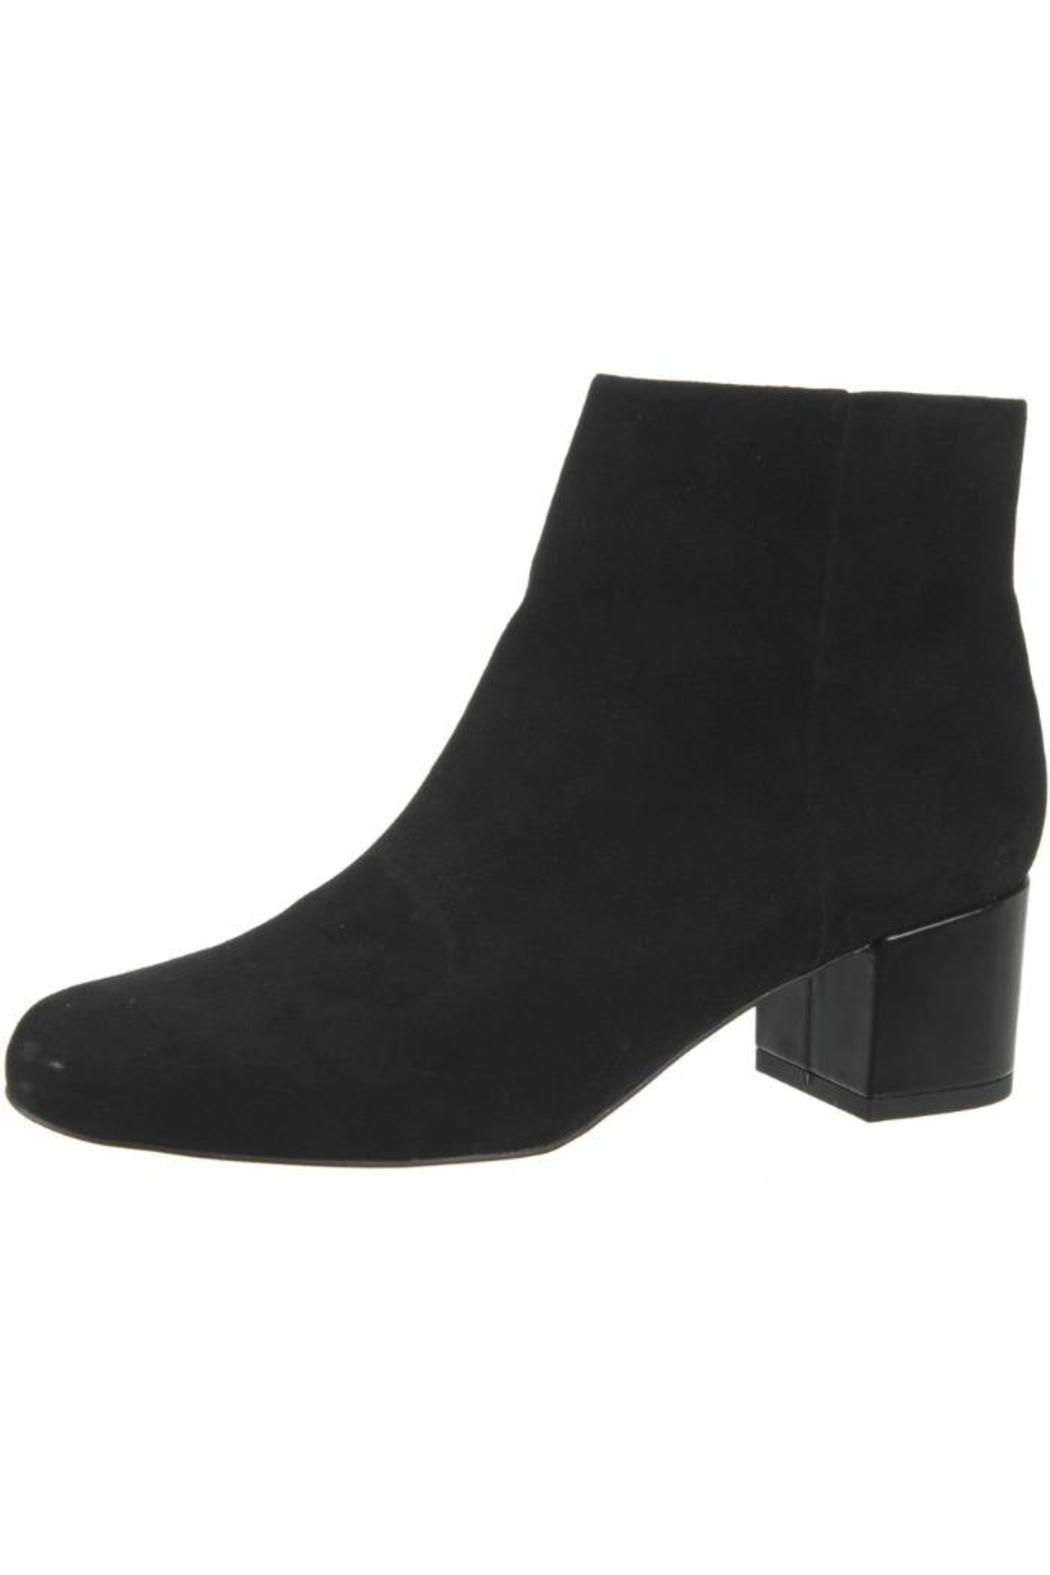 bdf6a4afc Sam Edelman Edith Booties from Long Island by TessaReed — Shoptiques